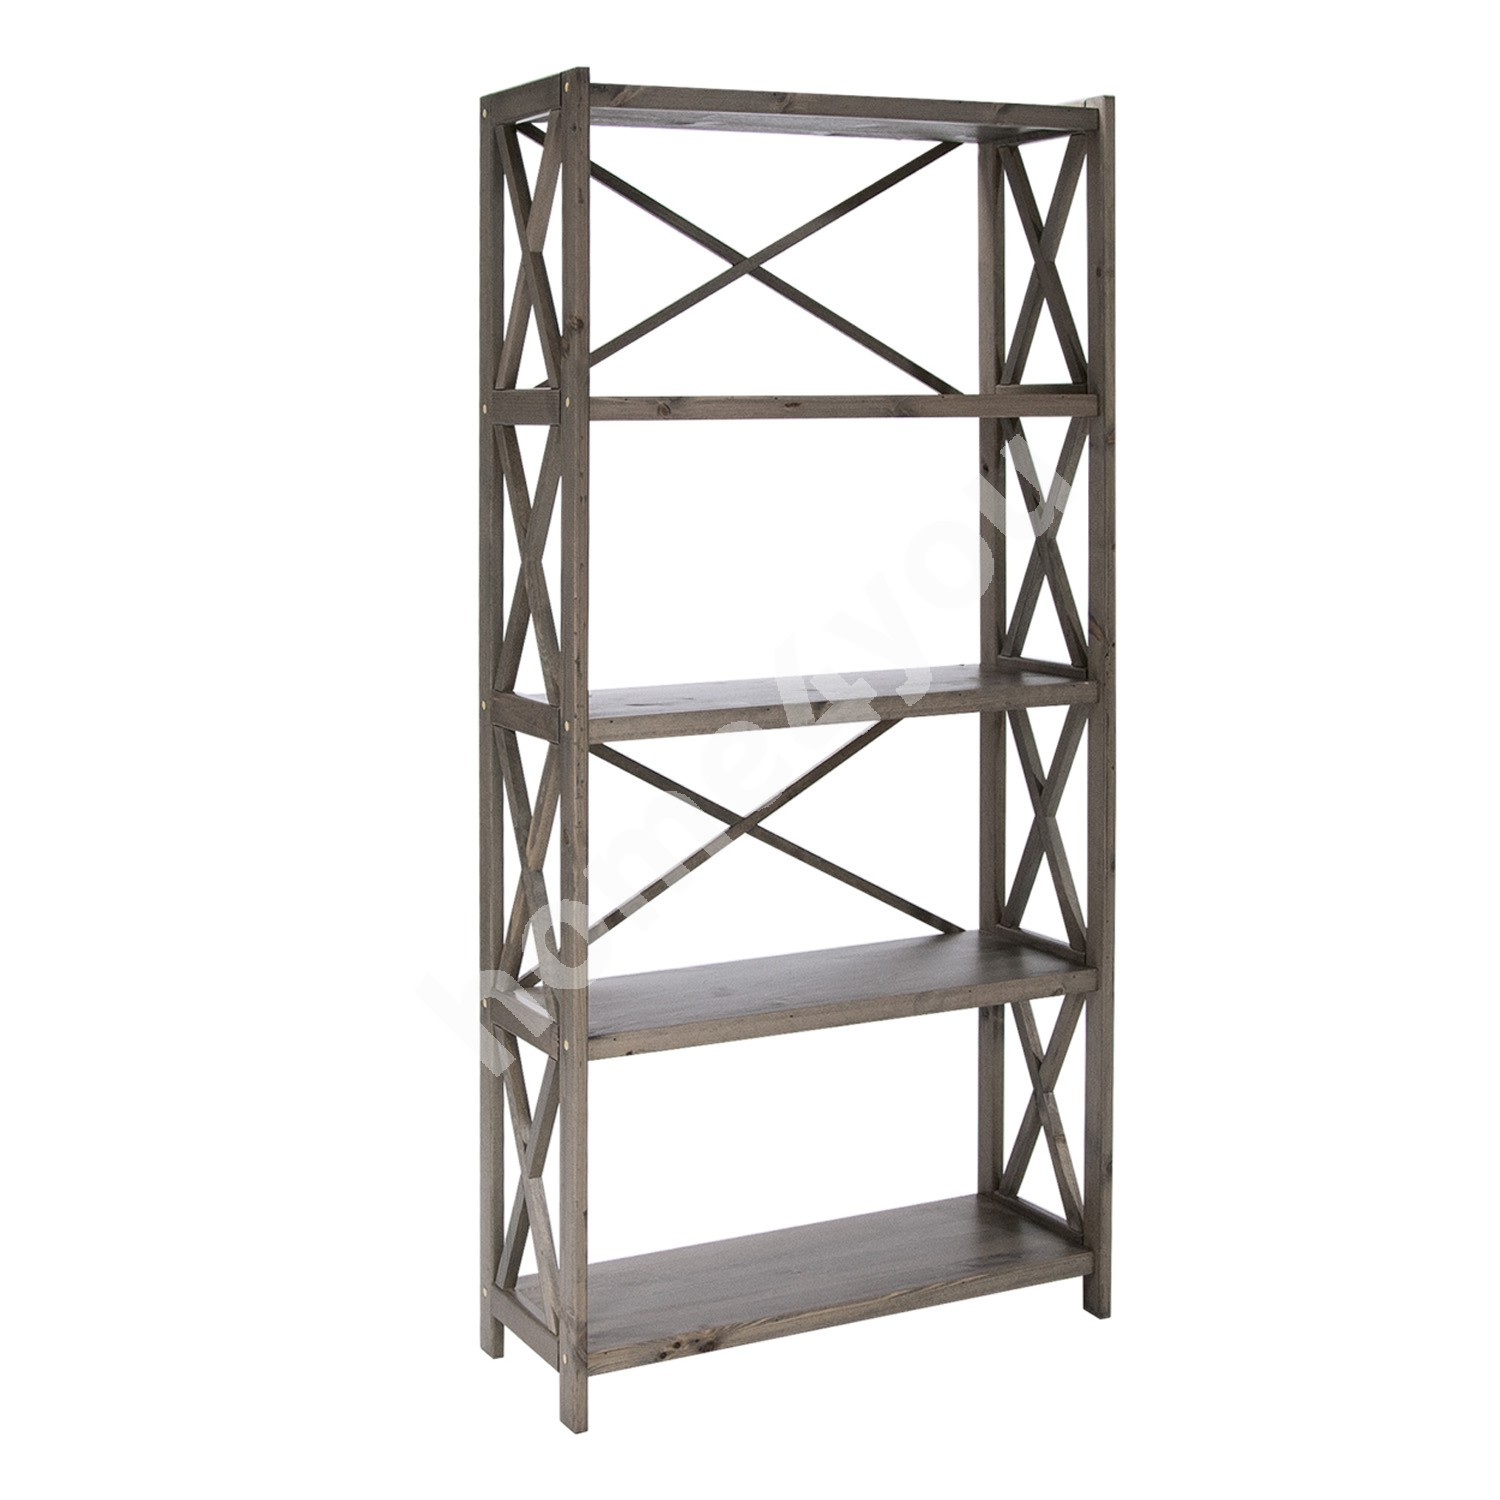 Shelf ALEX 5-tier, 80x31xH161cm, wood: pine, color: antique grey